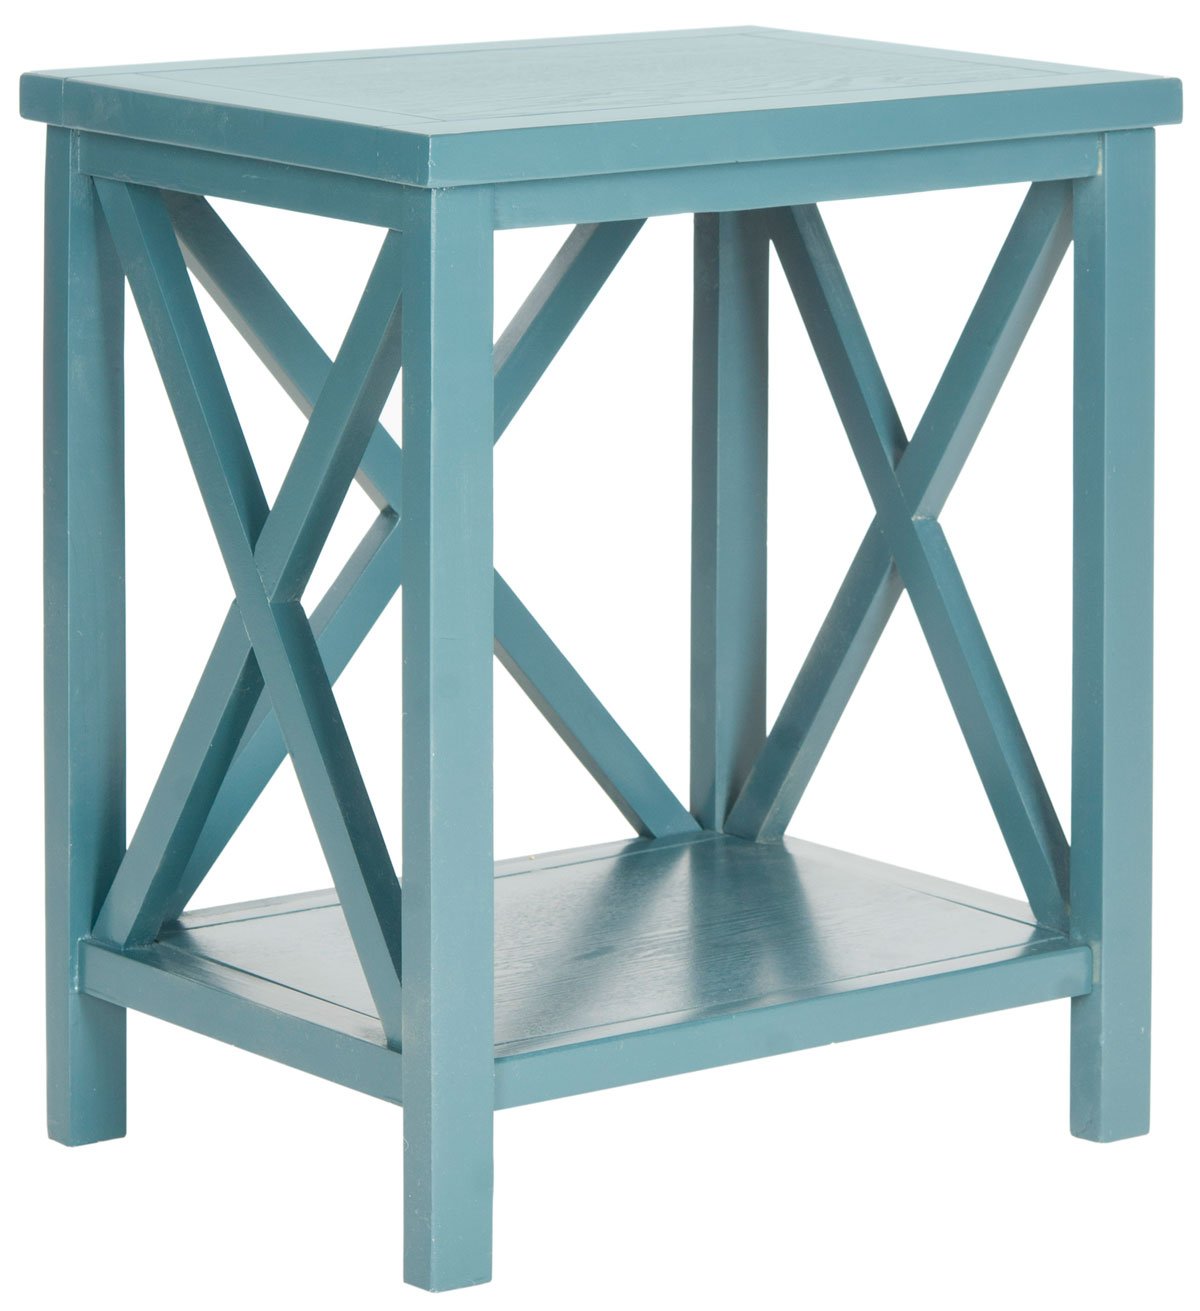 glamorous teal side table outdoor furniture wicker concrete banta faux teak ceramic top mosaic black folding rattan metal round small caro grill tile garden colored accent full